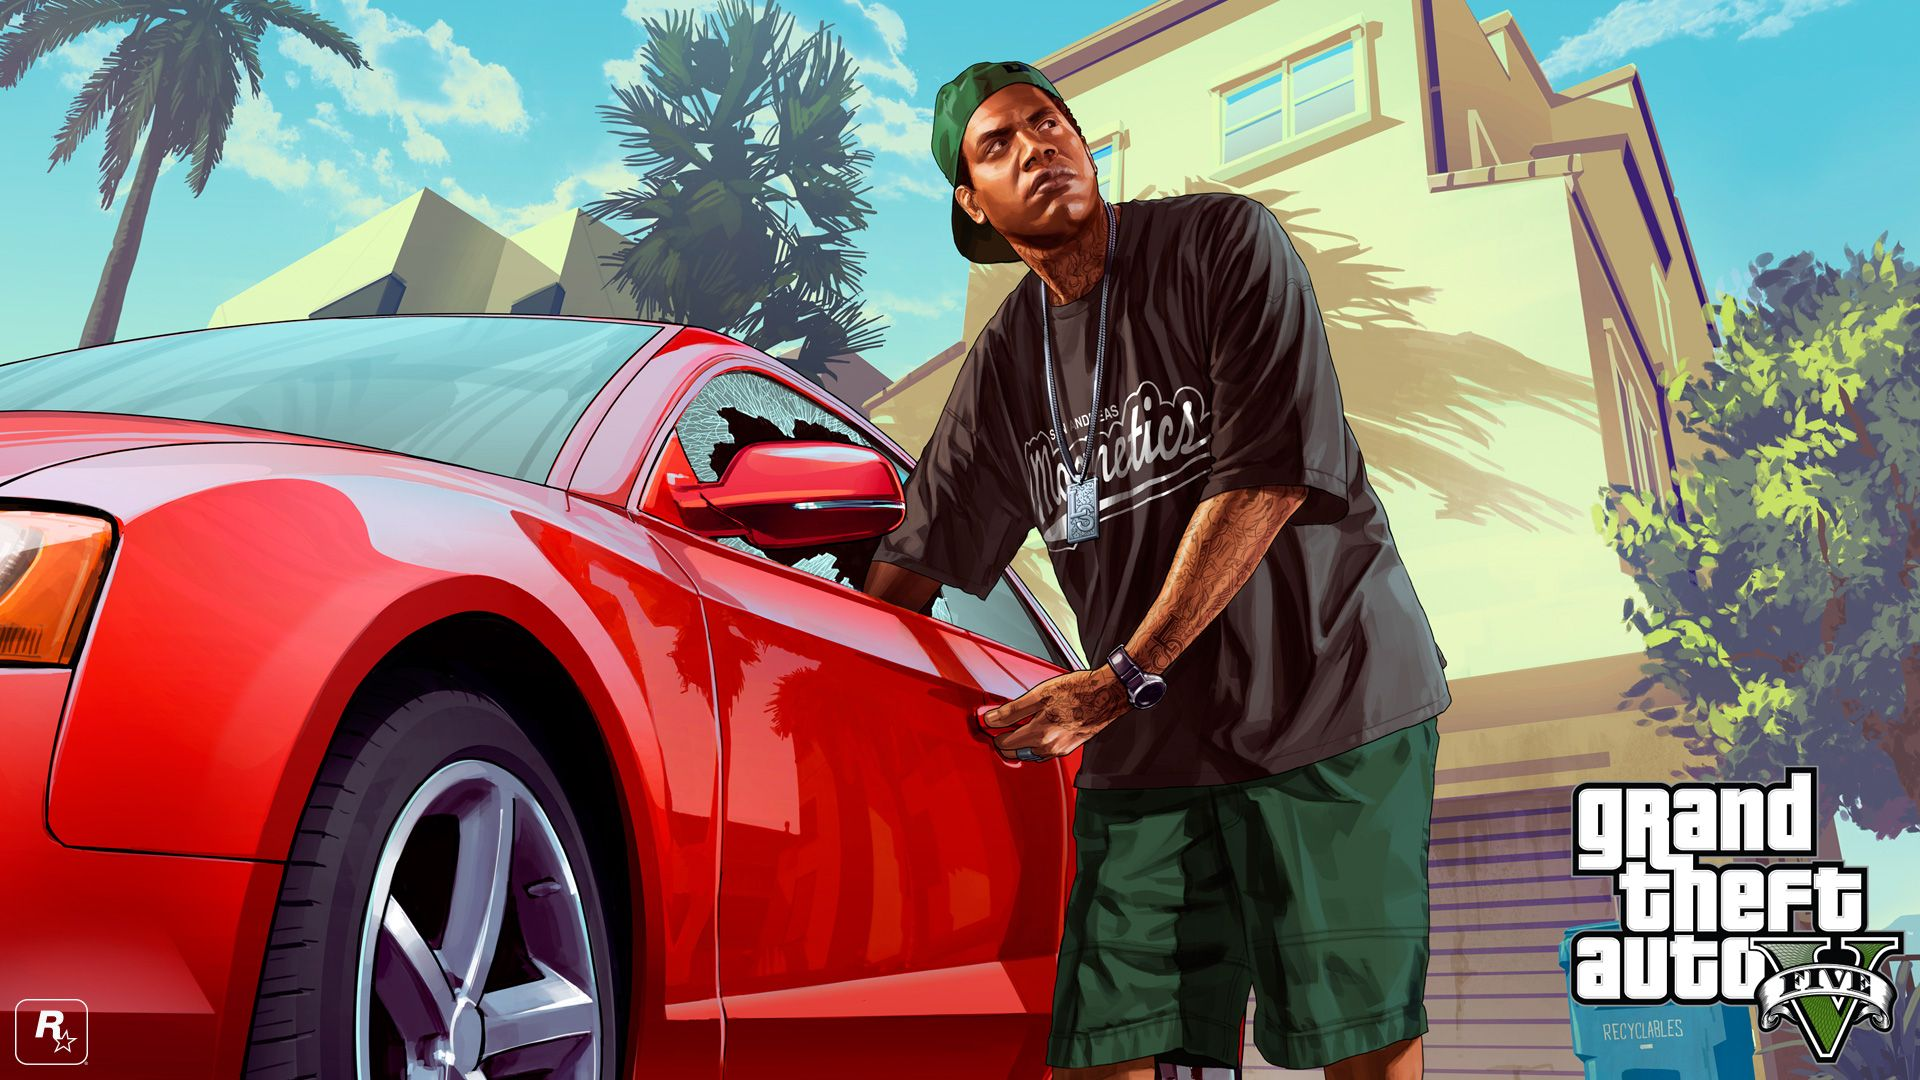 Grand theft auto v gets two new wallpapers ign